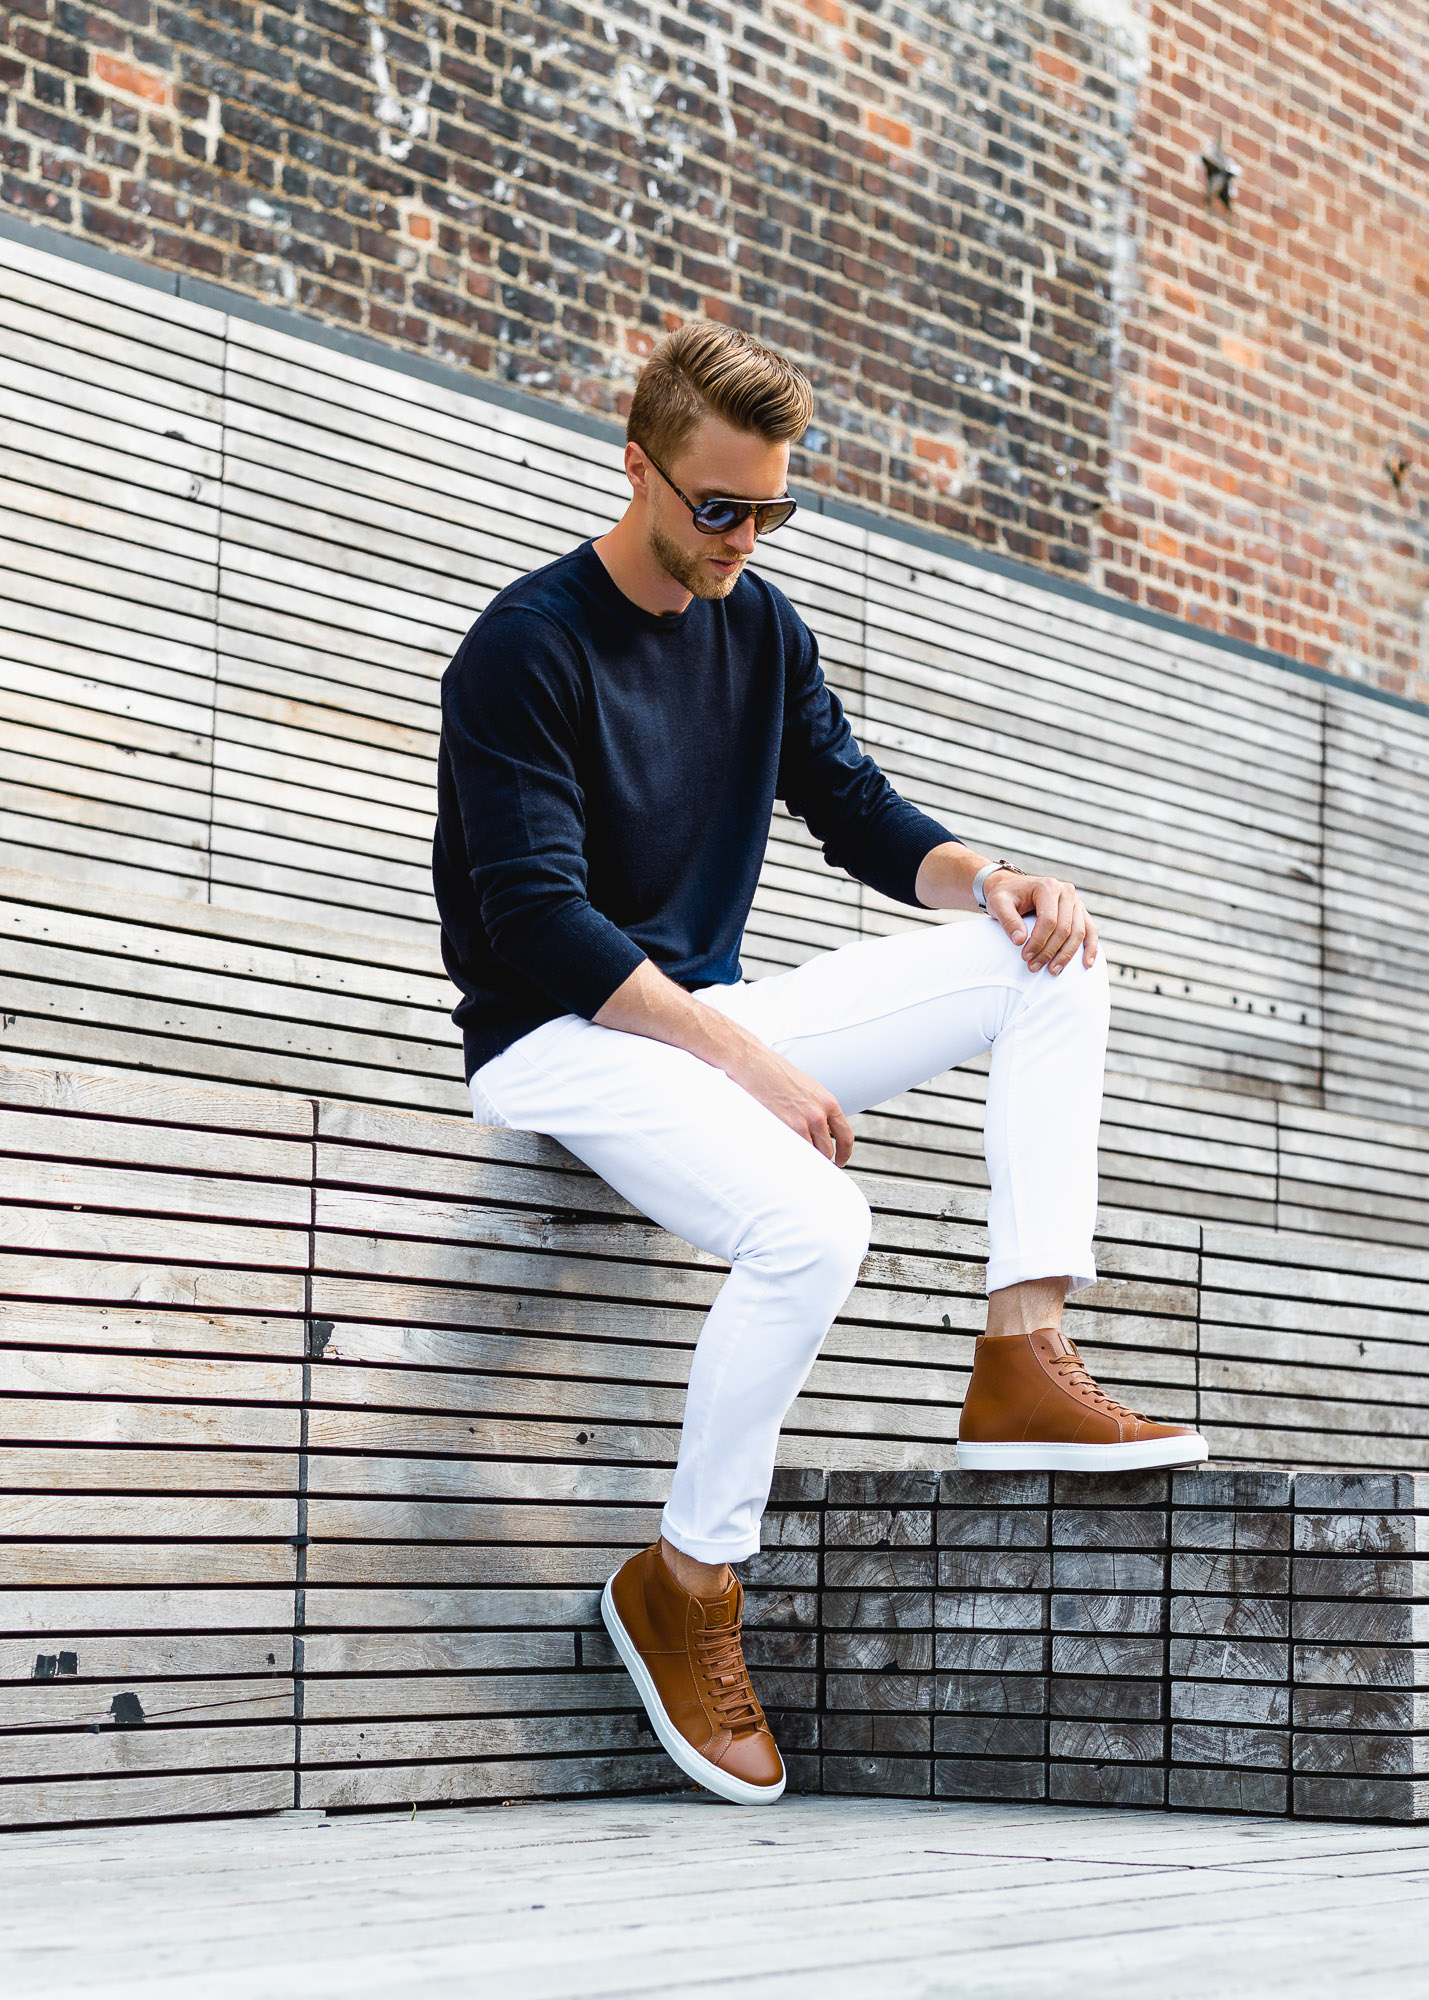 greats brand the royale high cuoio